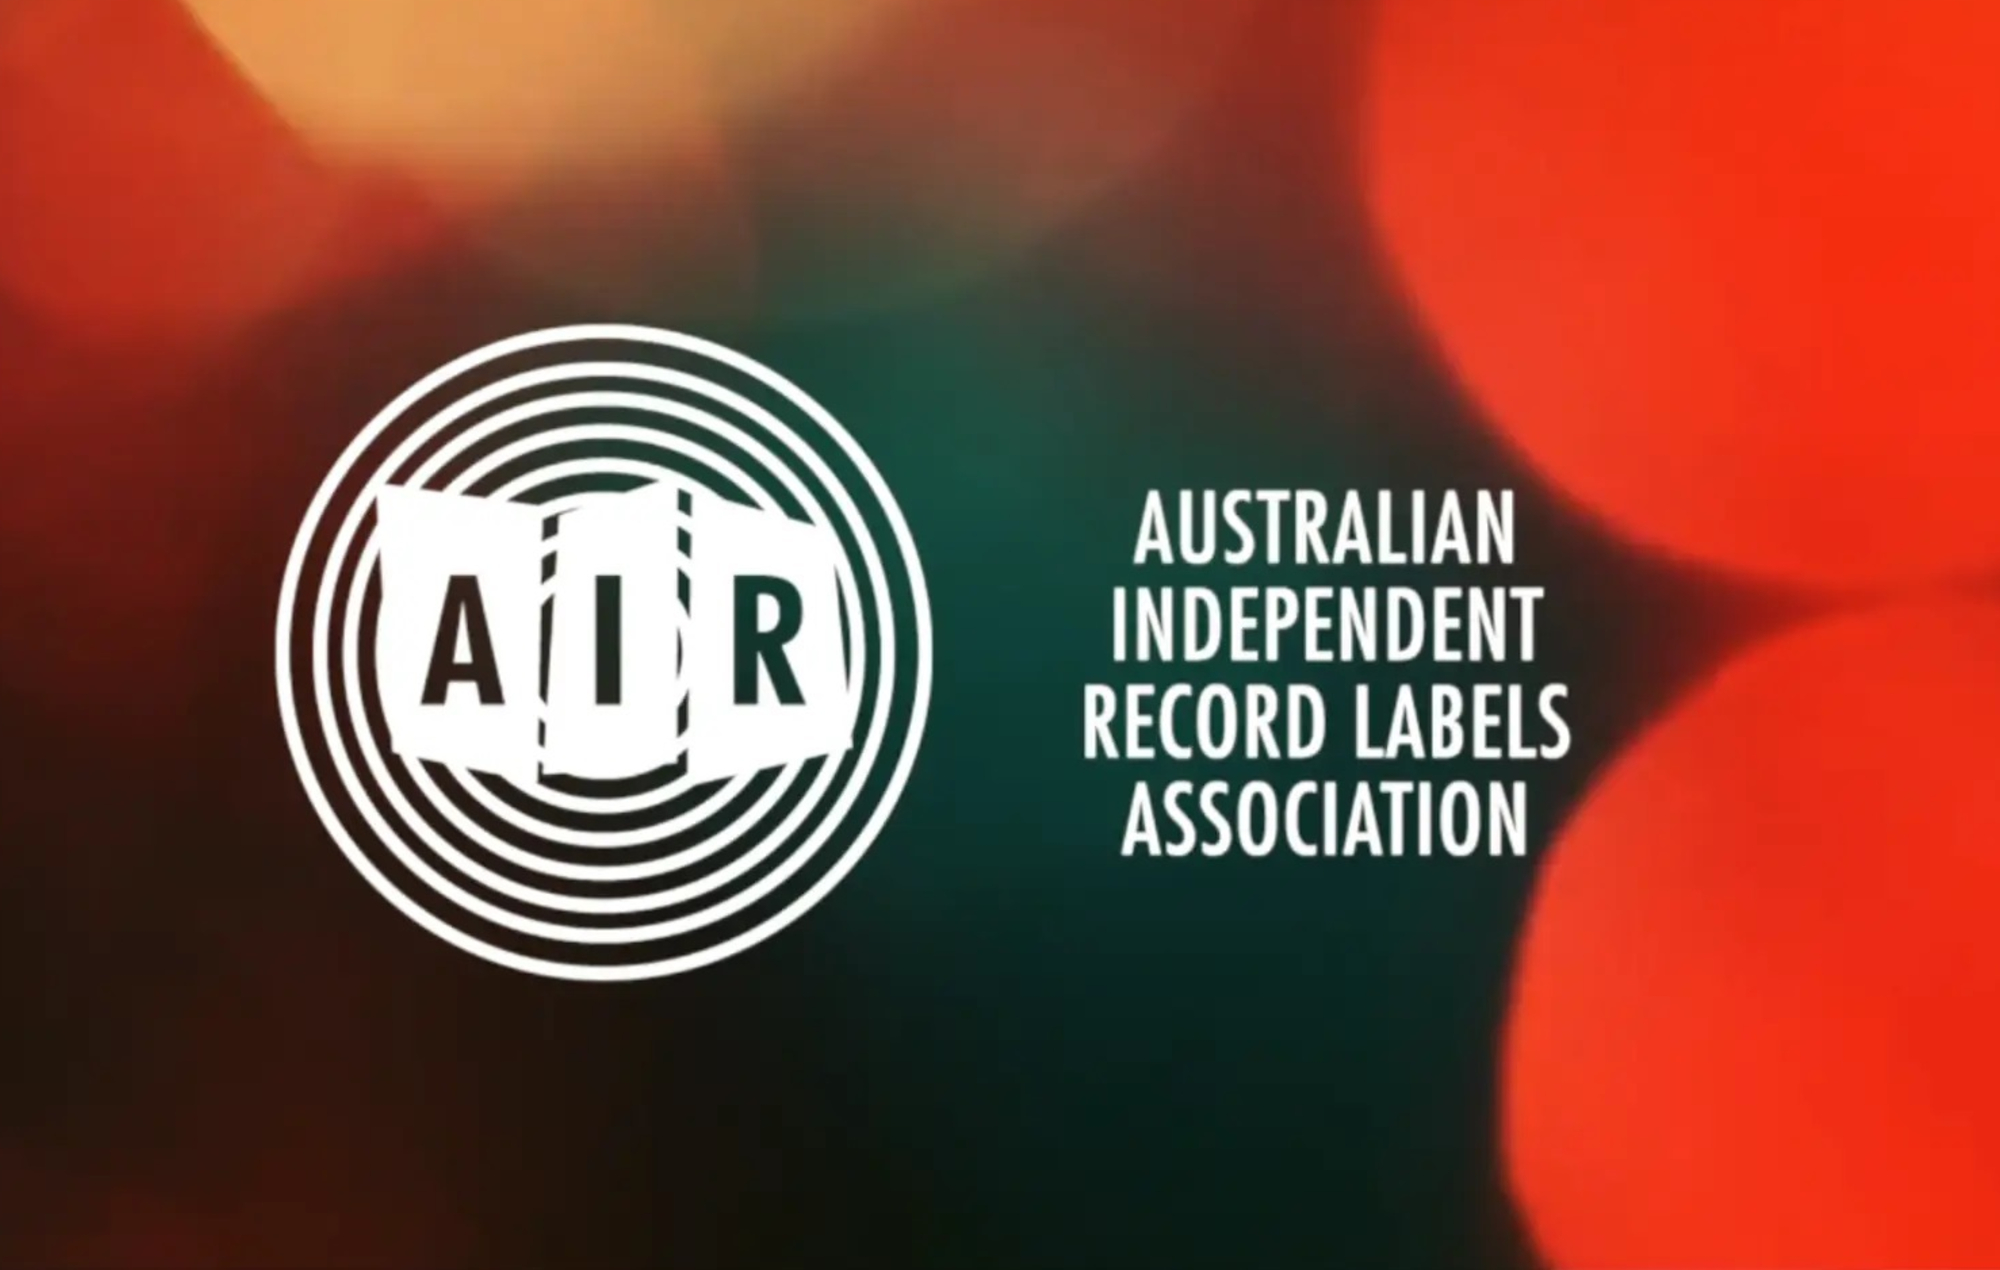 Female artists lead nominations for 2020 AIR awards | NME Australia